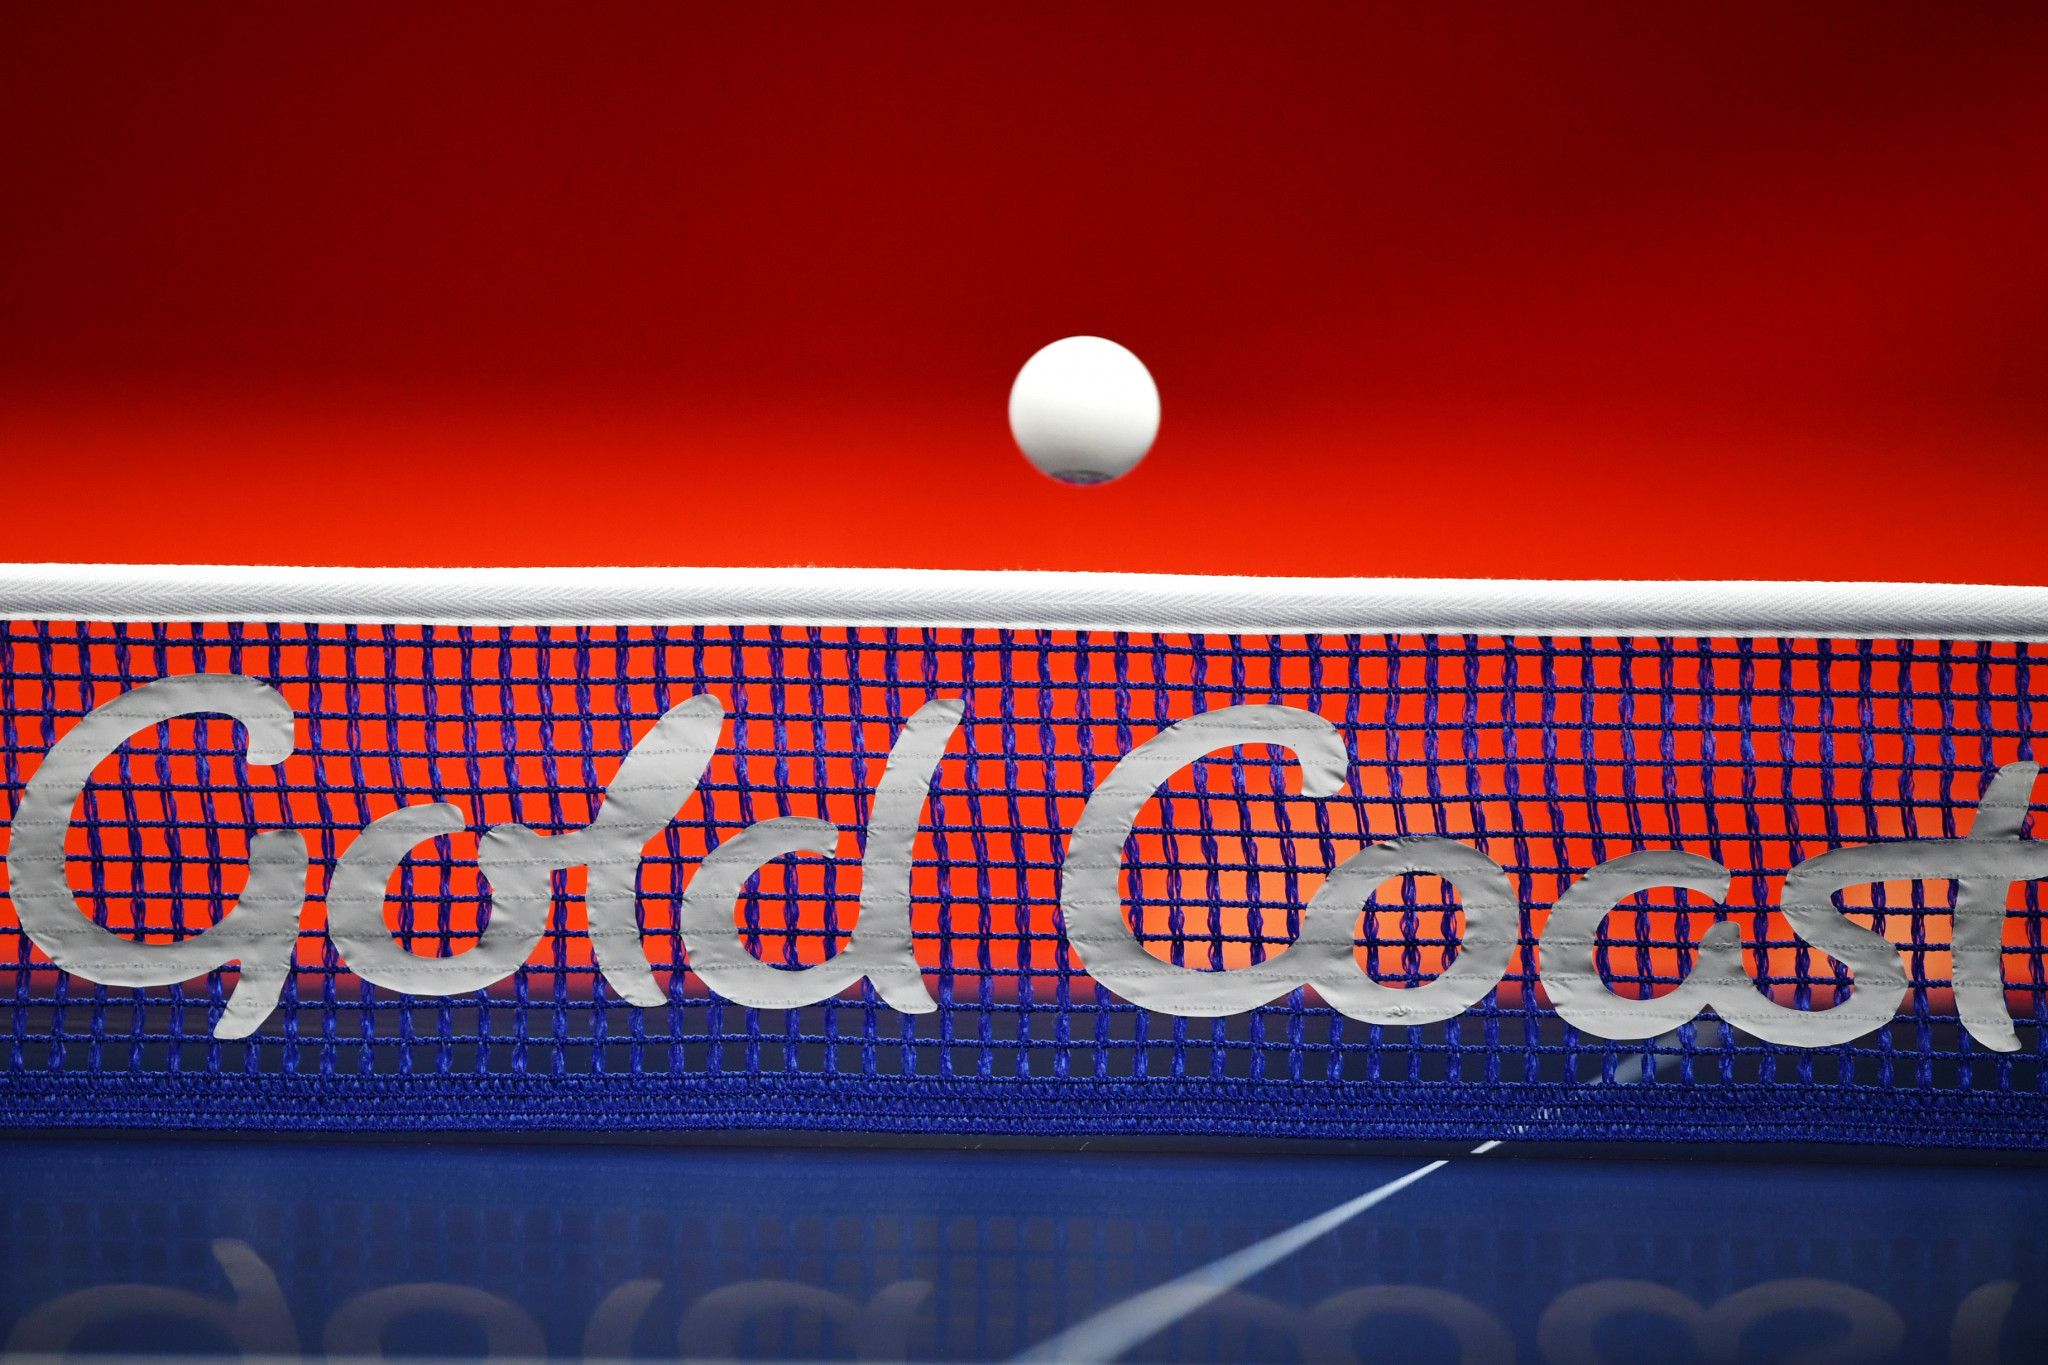 The man arrested as part of the investigation into the gambling syndicate is reportedly an Australian high-profile former table tennis player ©Getty Images